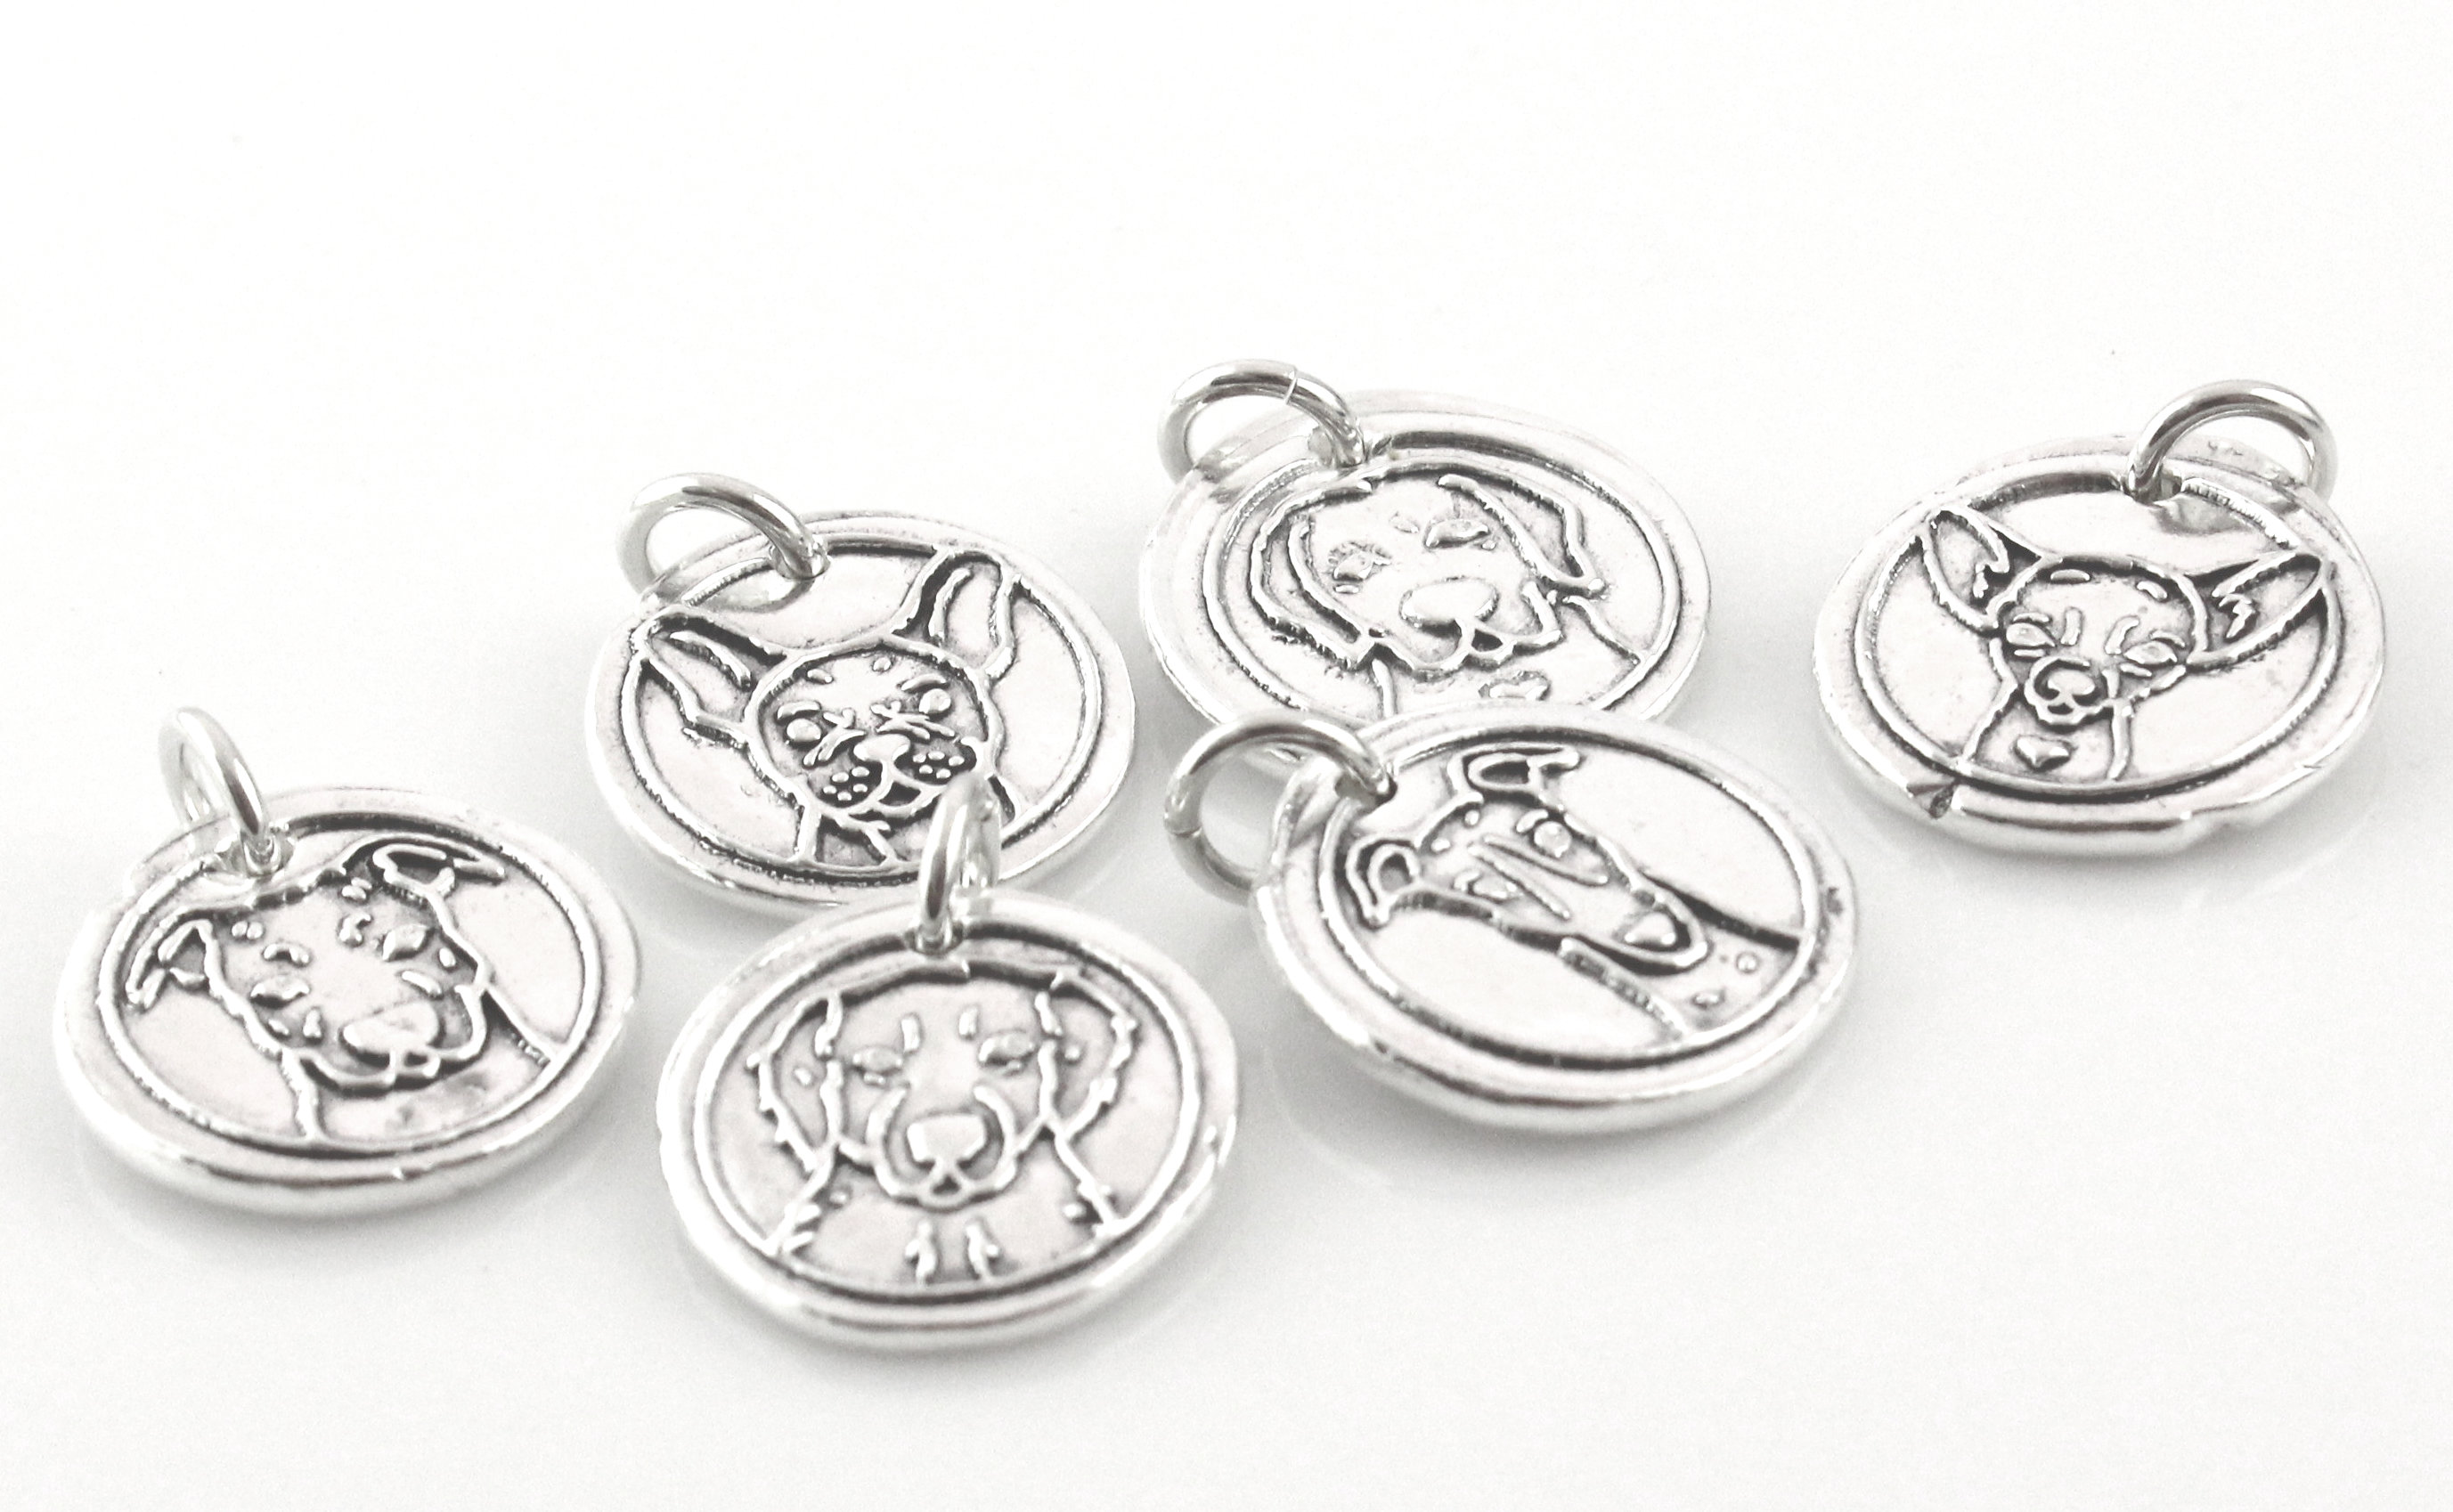 Dog Breed Necklace / Good Dog Wax Seal Inspired Necklace